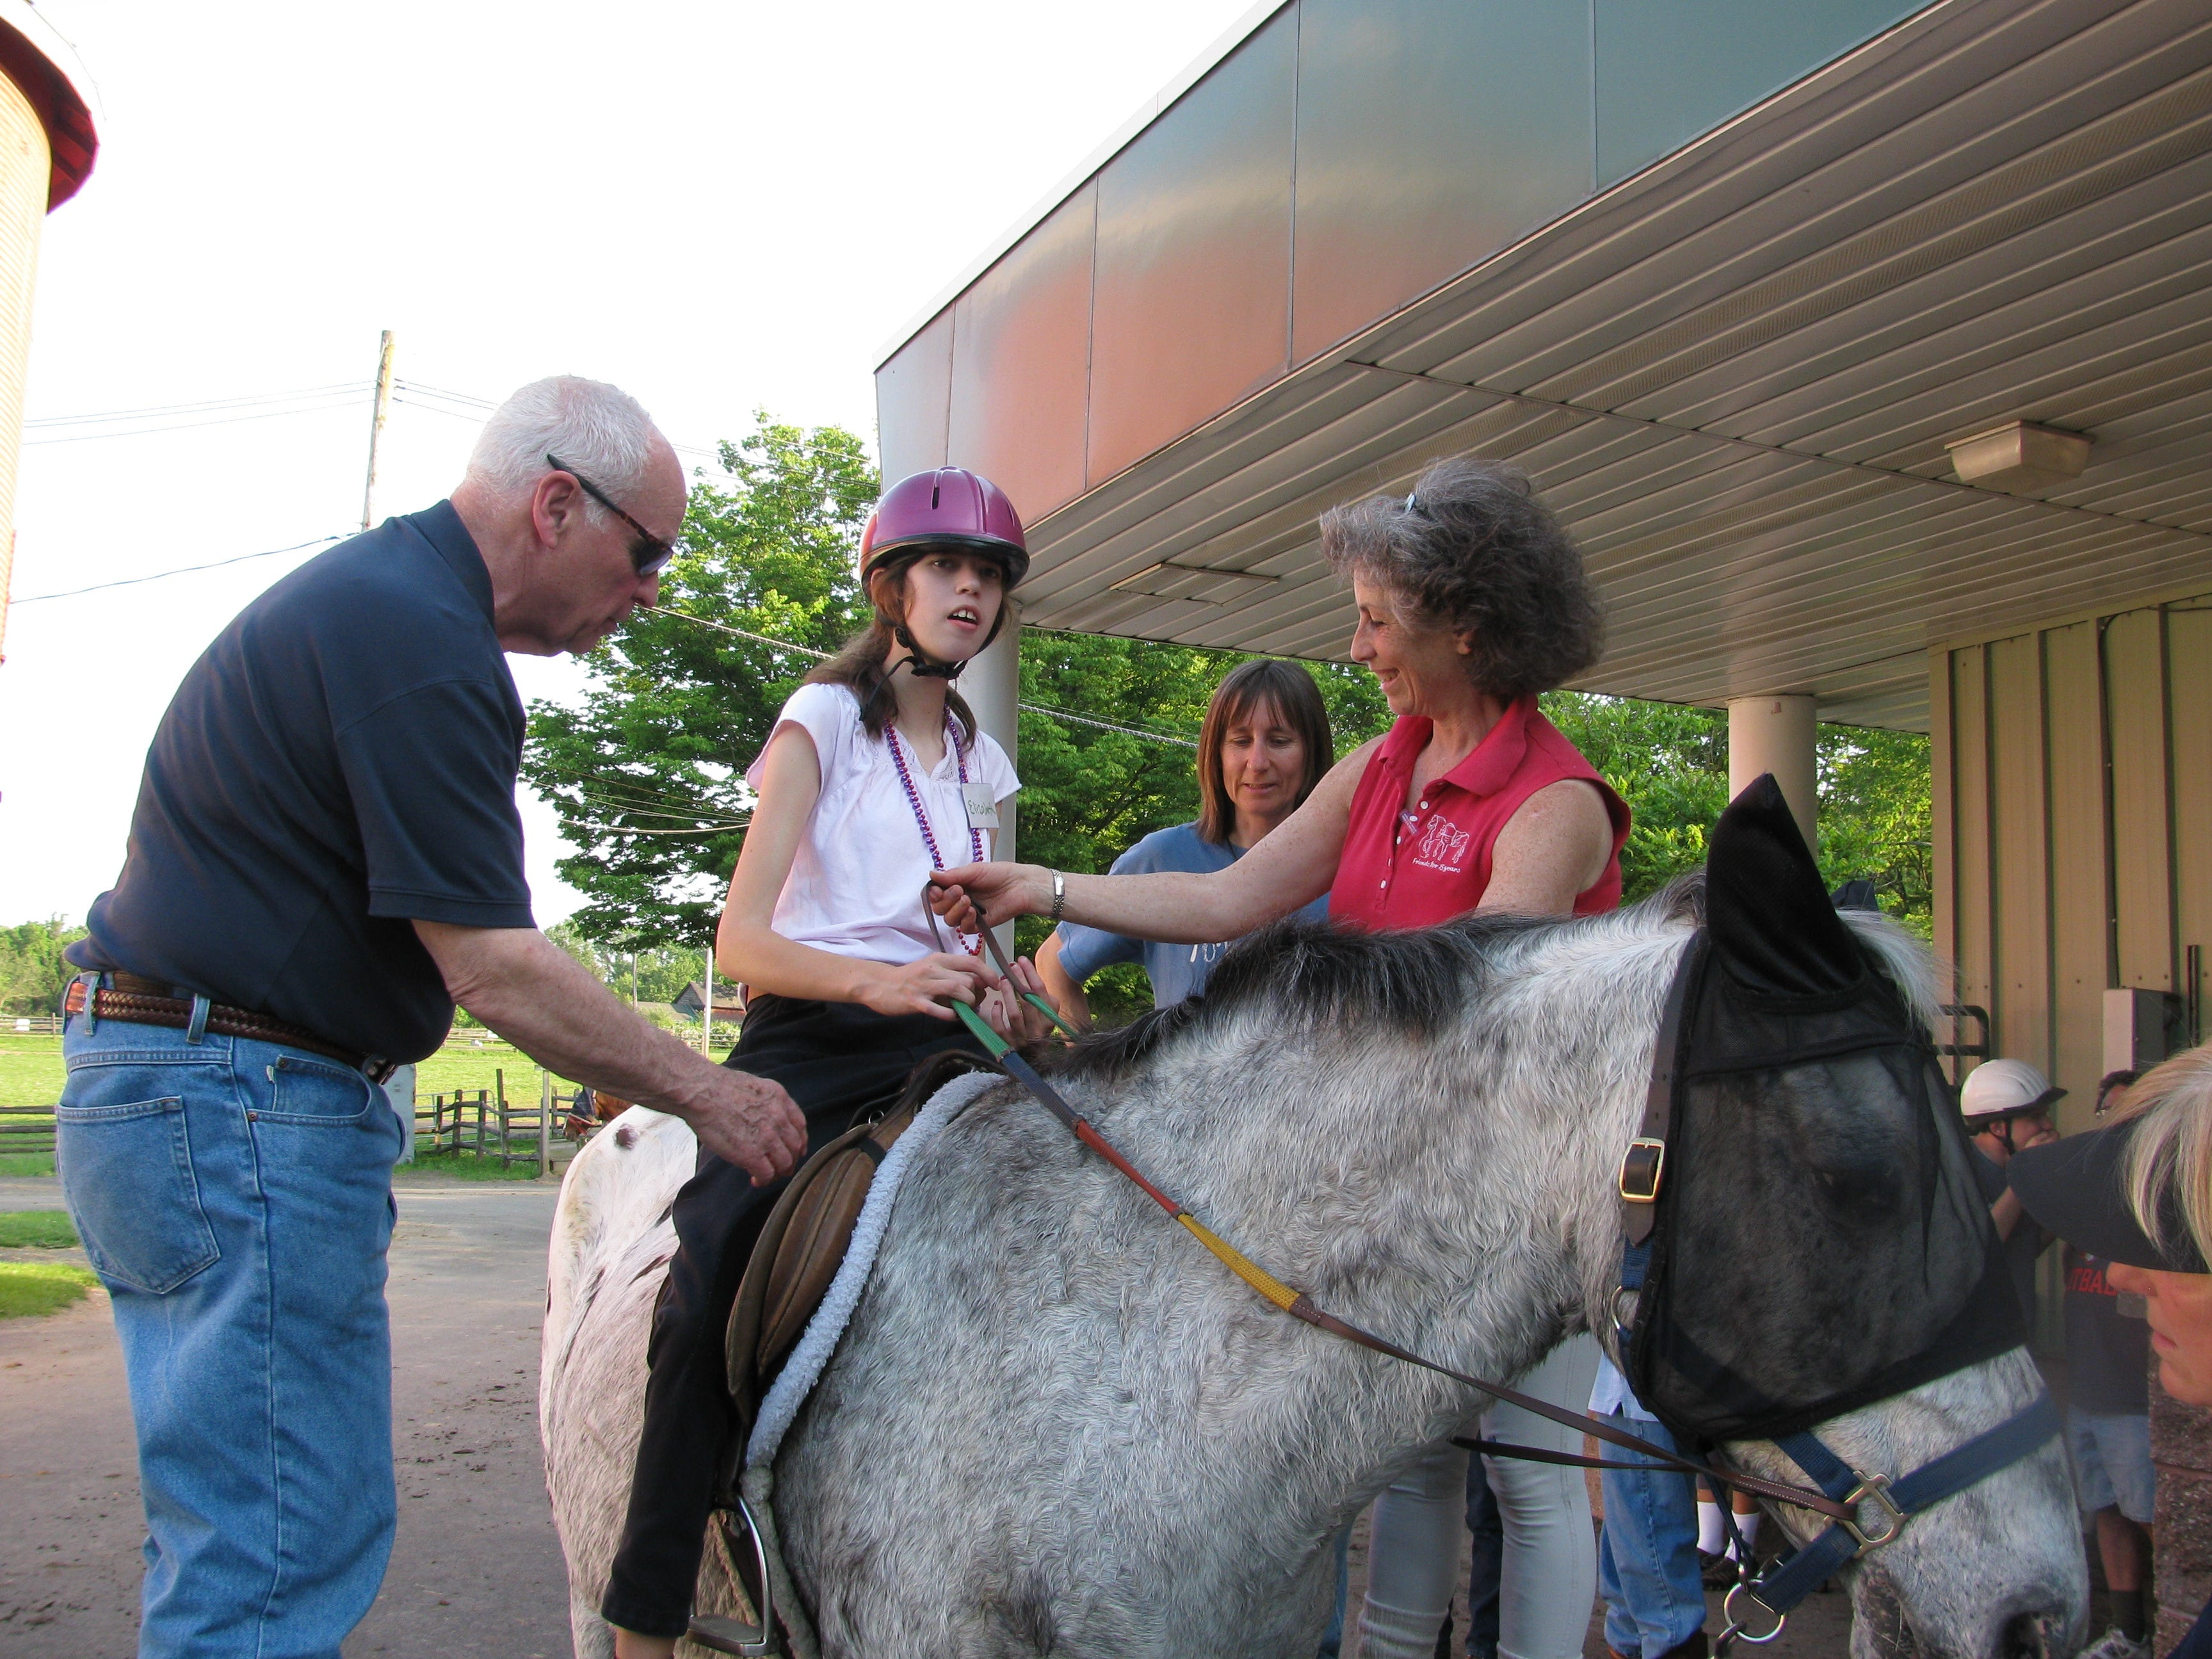 Volunteers are needed for the Therapeutic Recreation Department Adaptive Horseback Riding Program at Lord Stirling Stable in the Basking Ridge section of Bernards. Equestrian experience is not necessary.